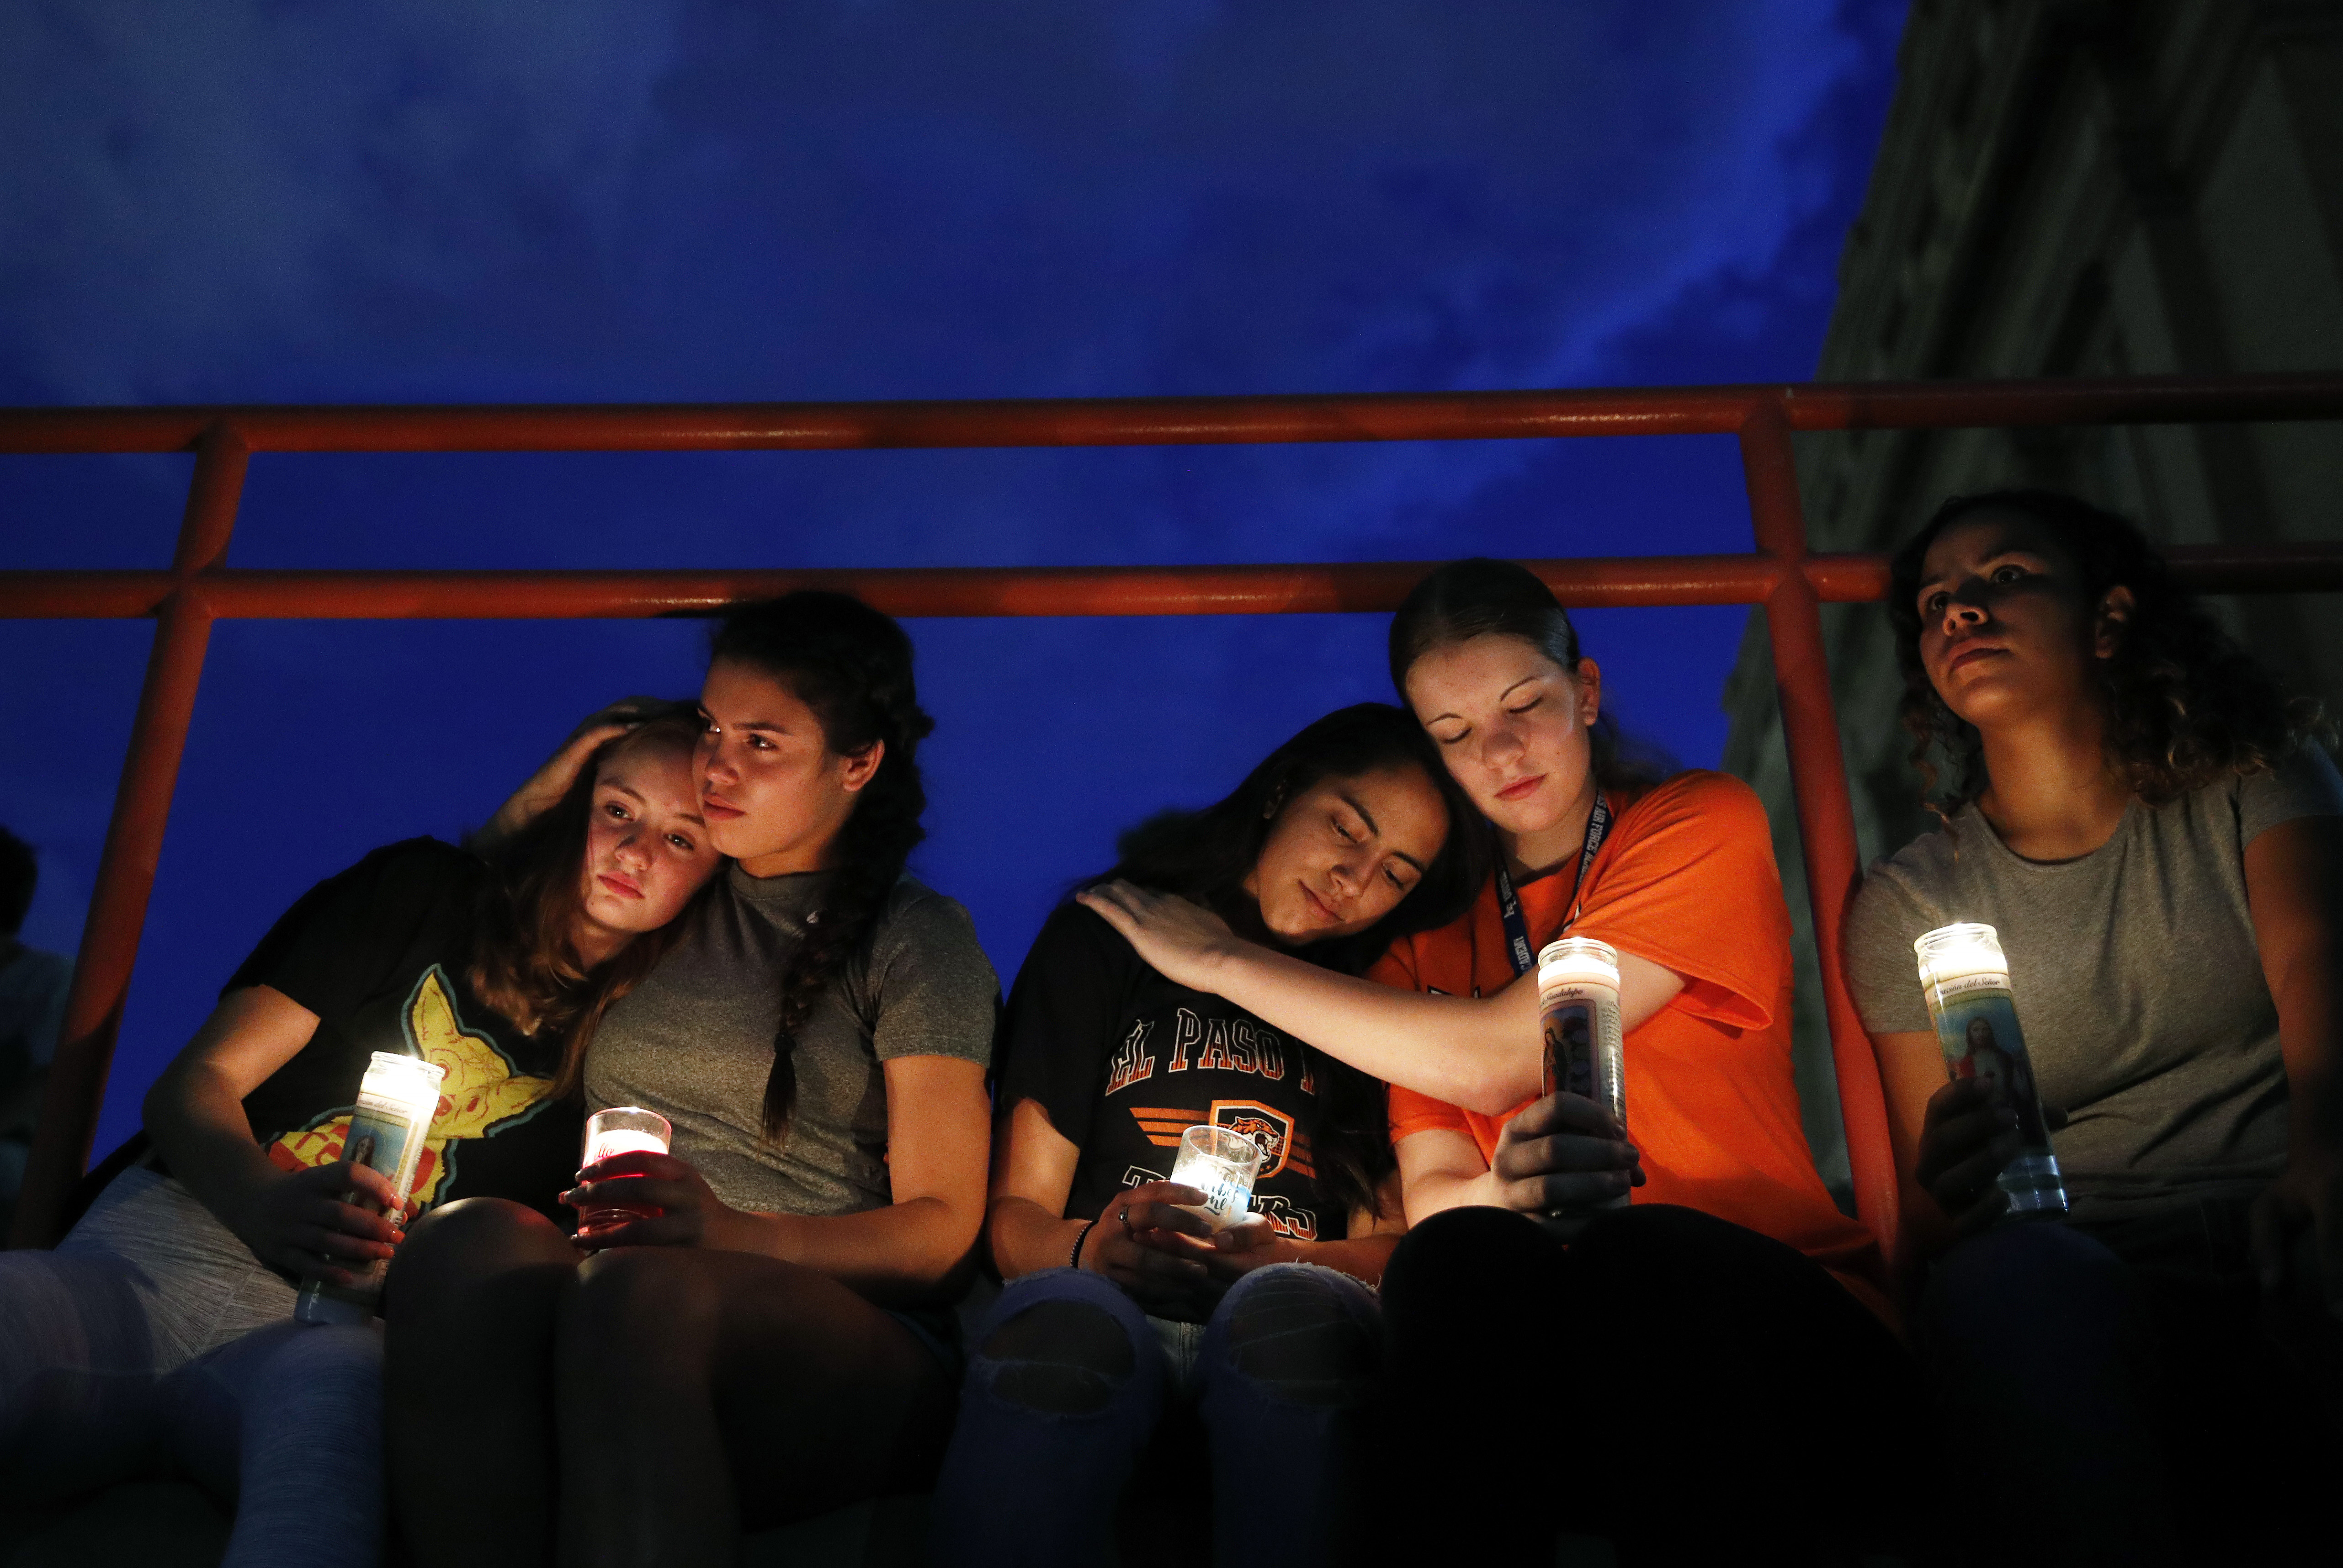 Covering Mass Shootings: Resources for Journalists - Dart Center